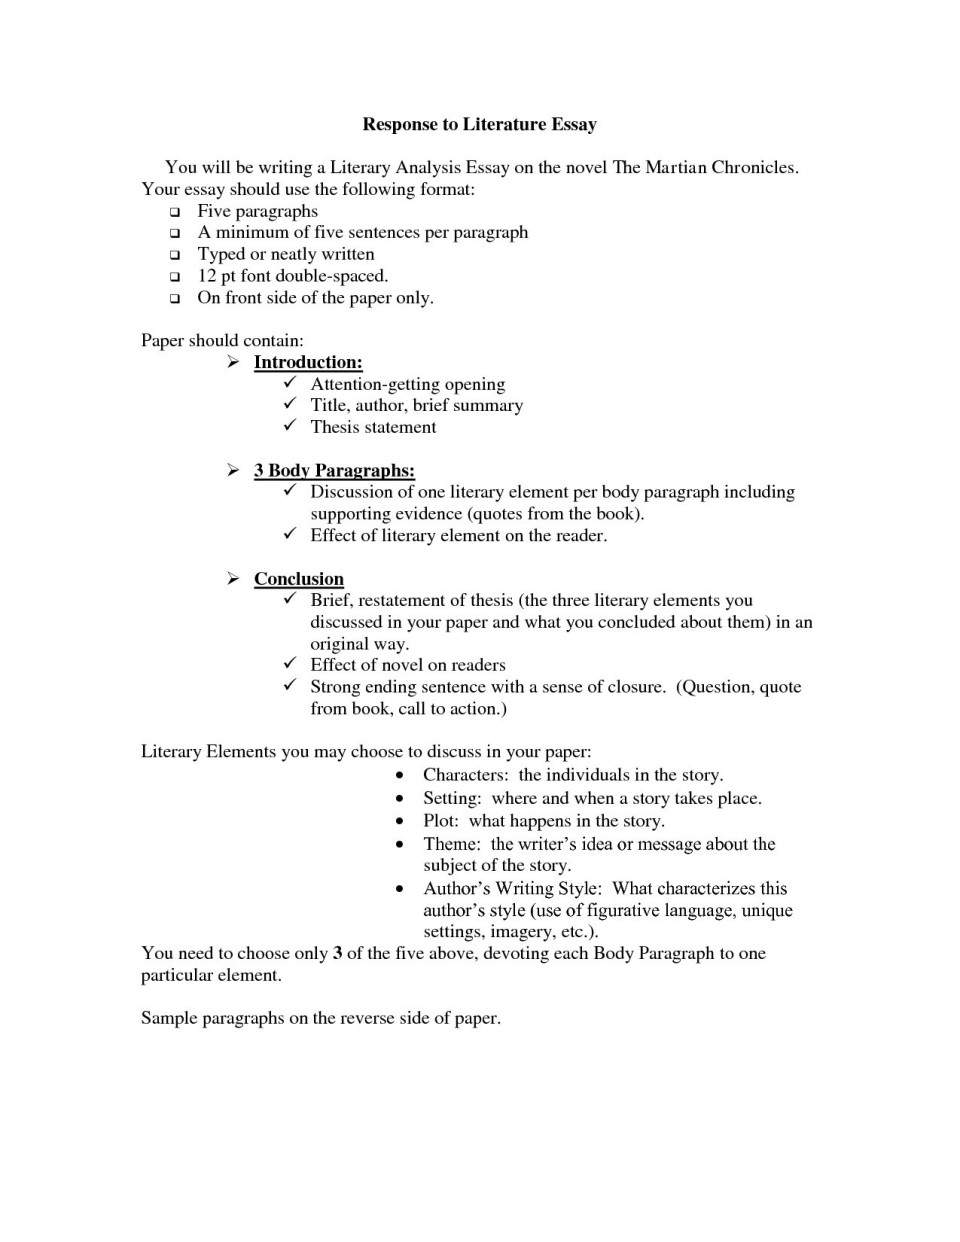 006 Essay Example Brilliant Ideas Of Resume Cv Cover Letter Poetry Reflection Paper Poem Parison Creative Explication Formidable Trifles Topics Feminism 960